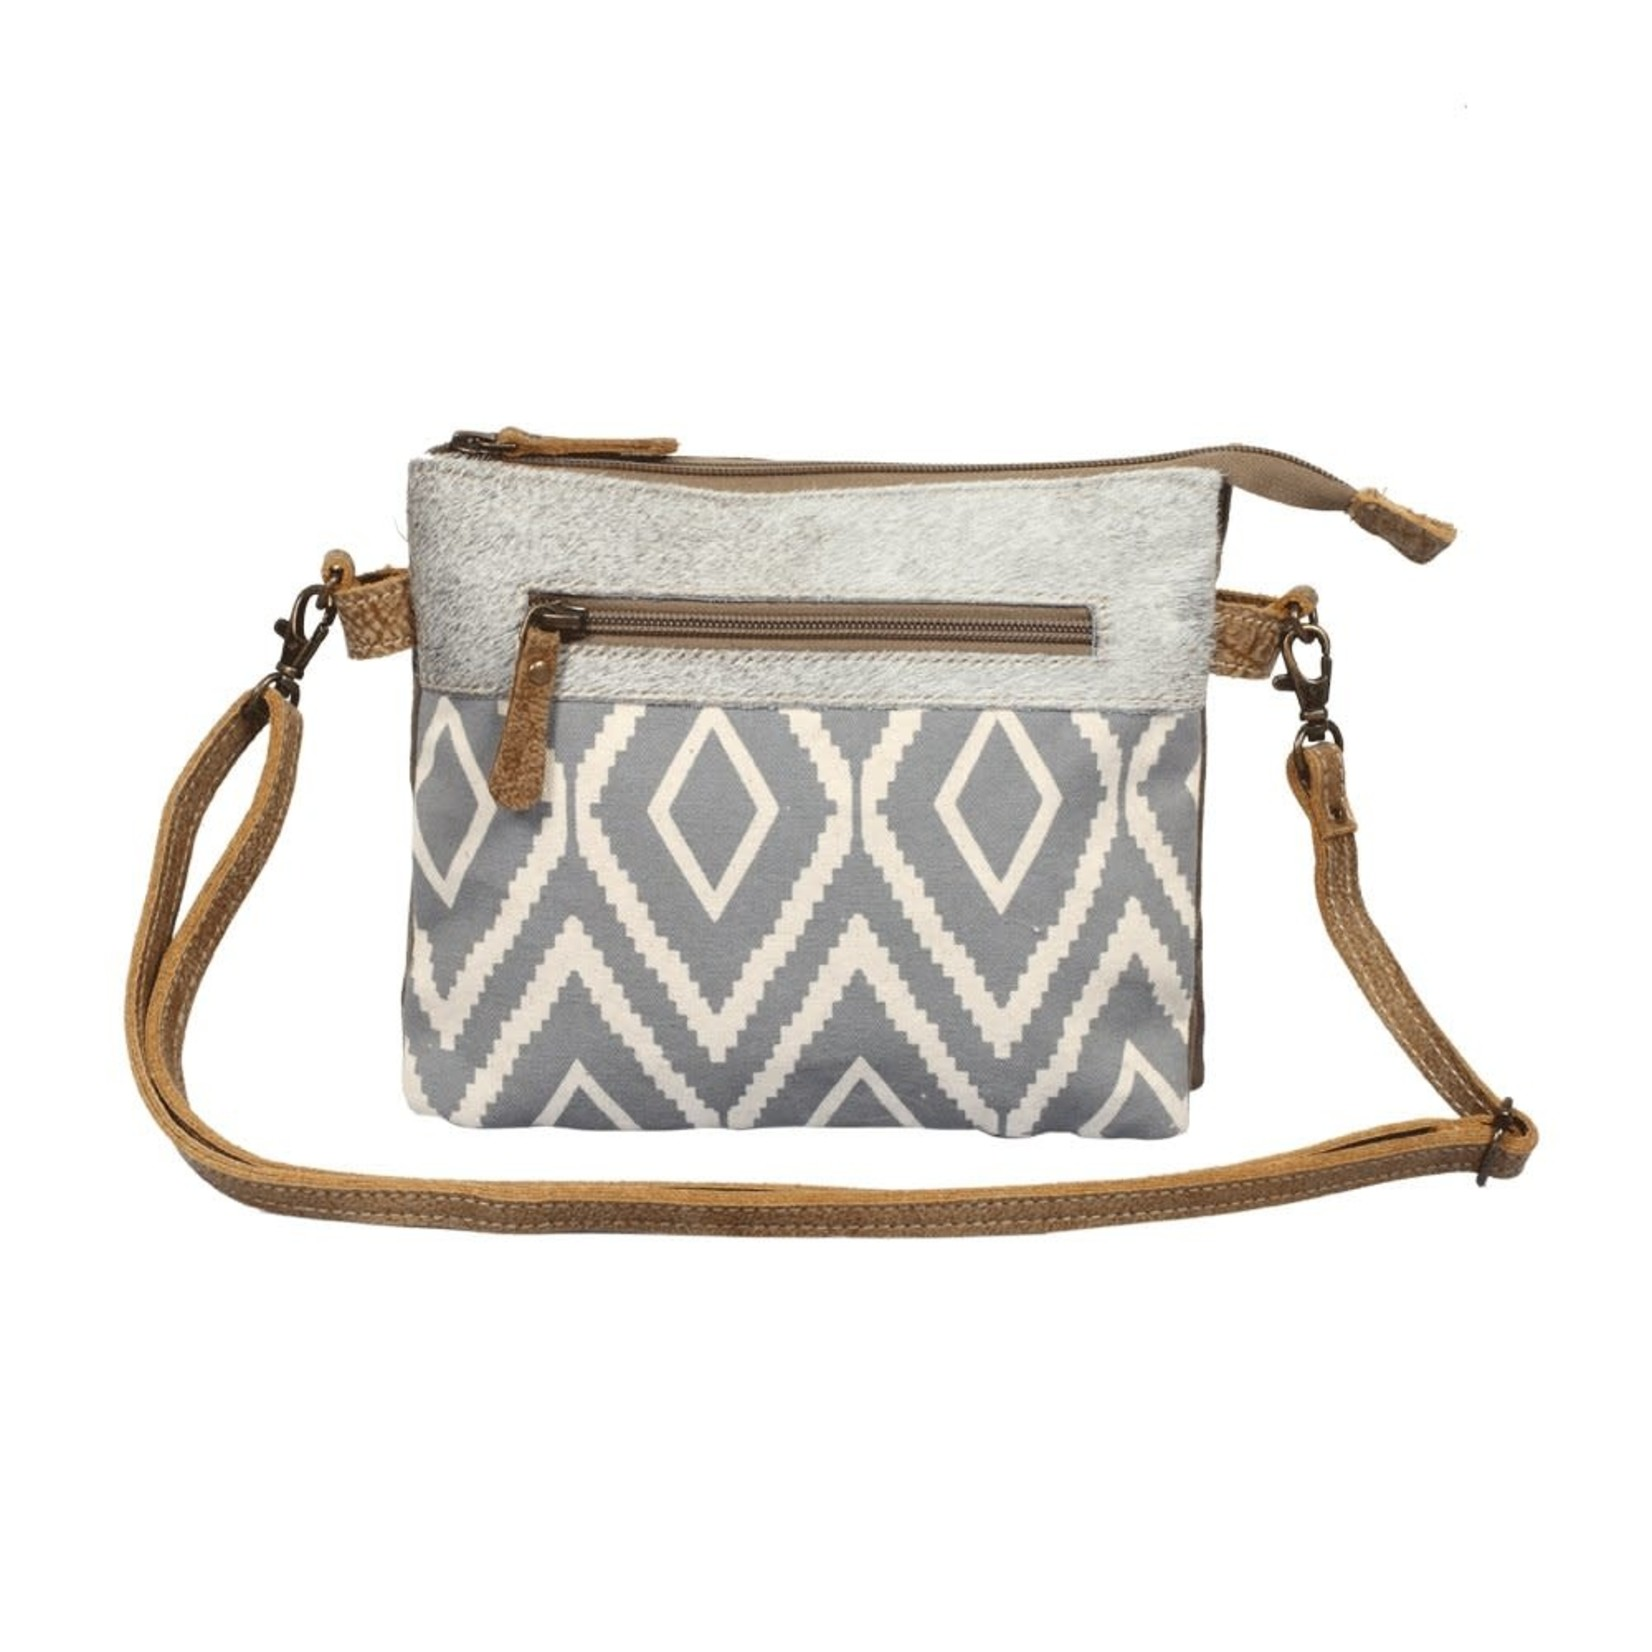 Myra Bags S-1331 Blaze Small & Crossbody Bag